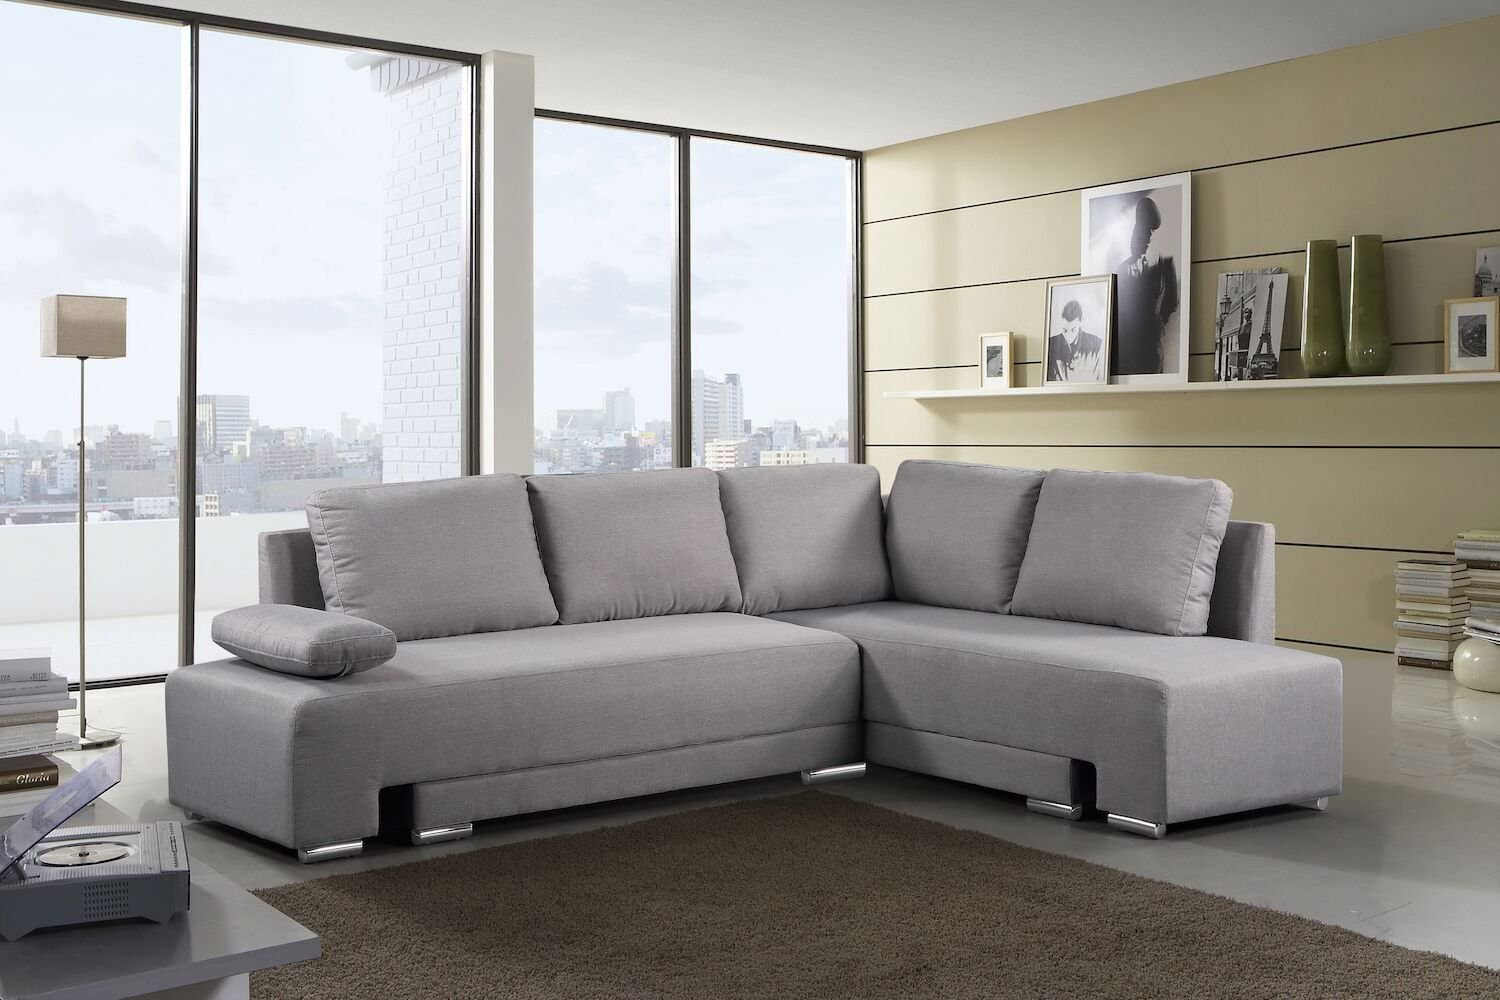 Amazon.com: Velago Villars Convertible Sectional Sleeper ...